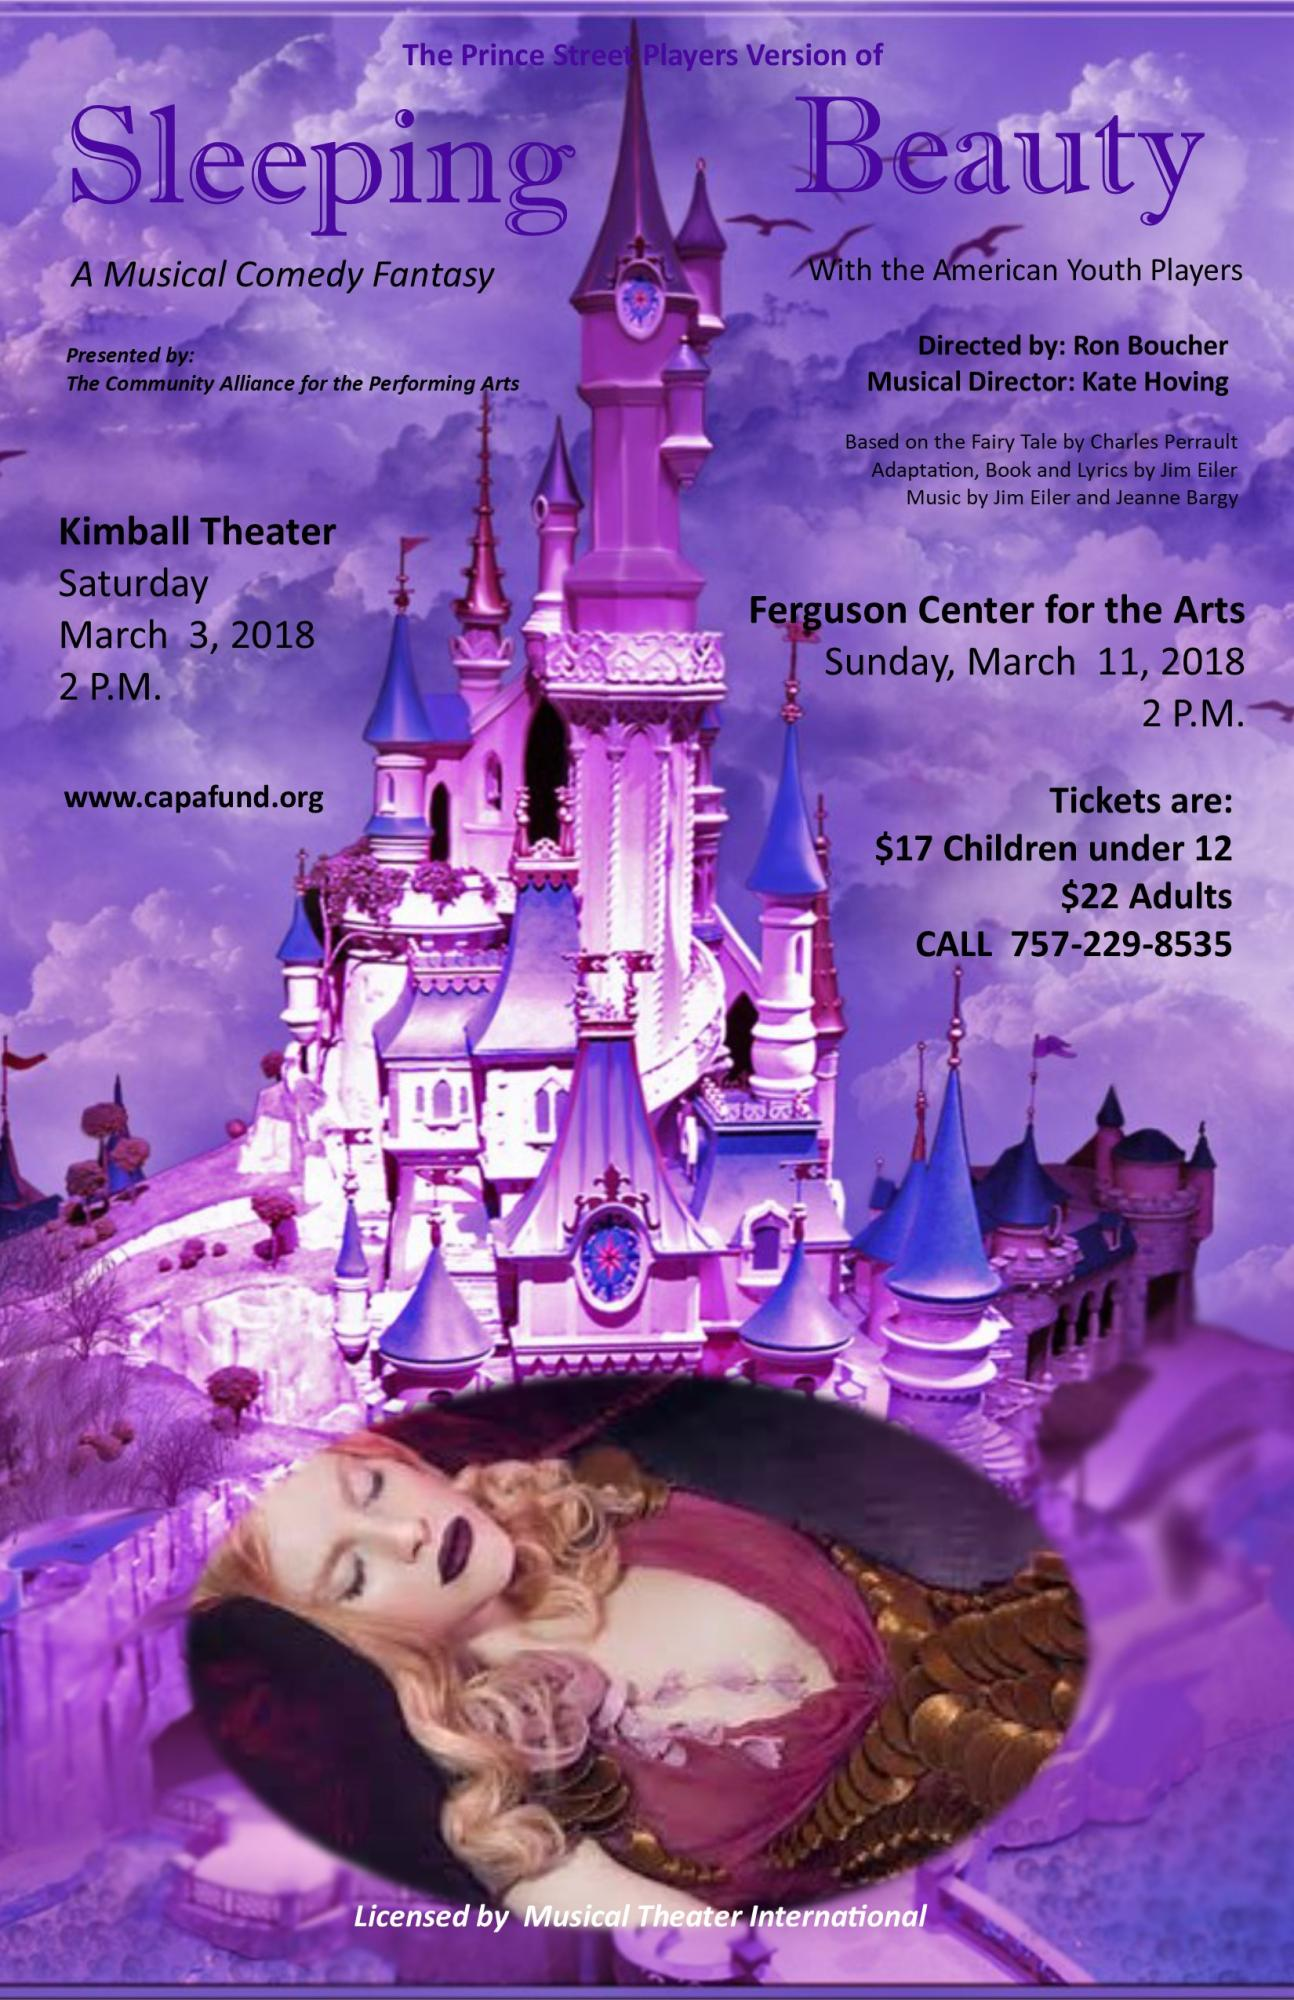 Sleeping_Beauty_Poster7941.jpg